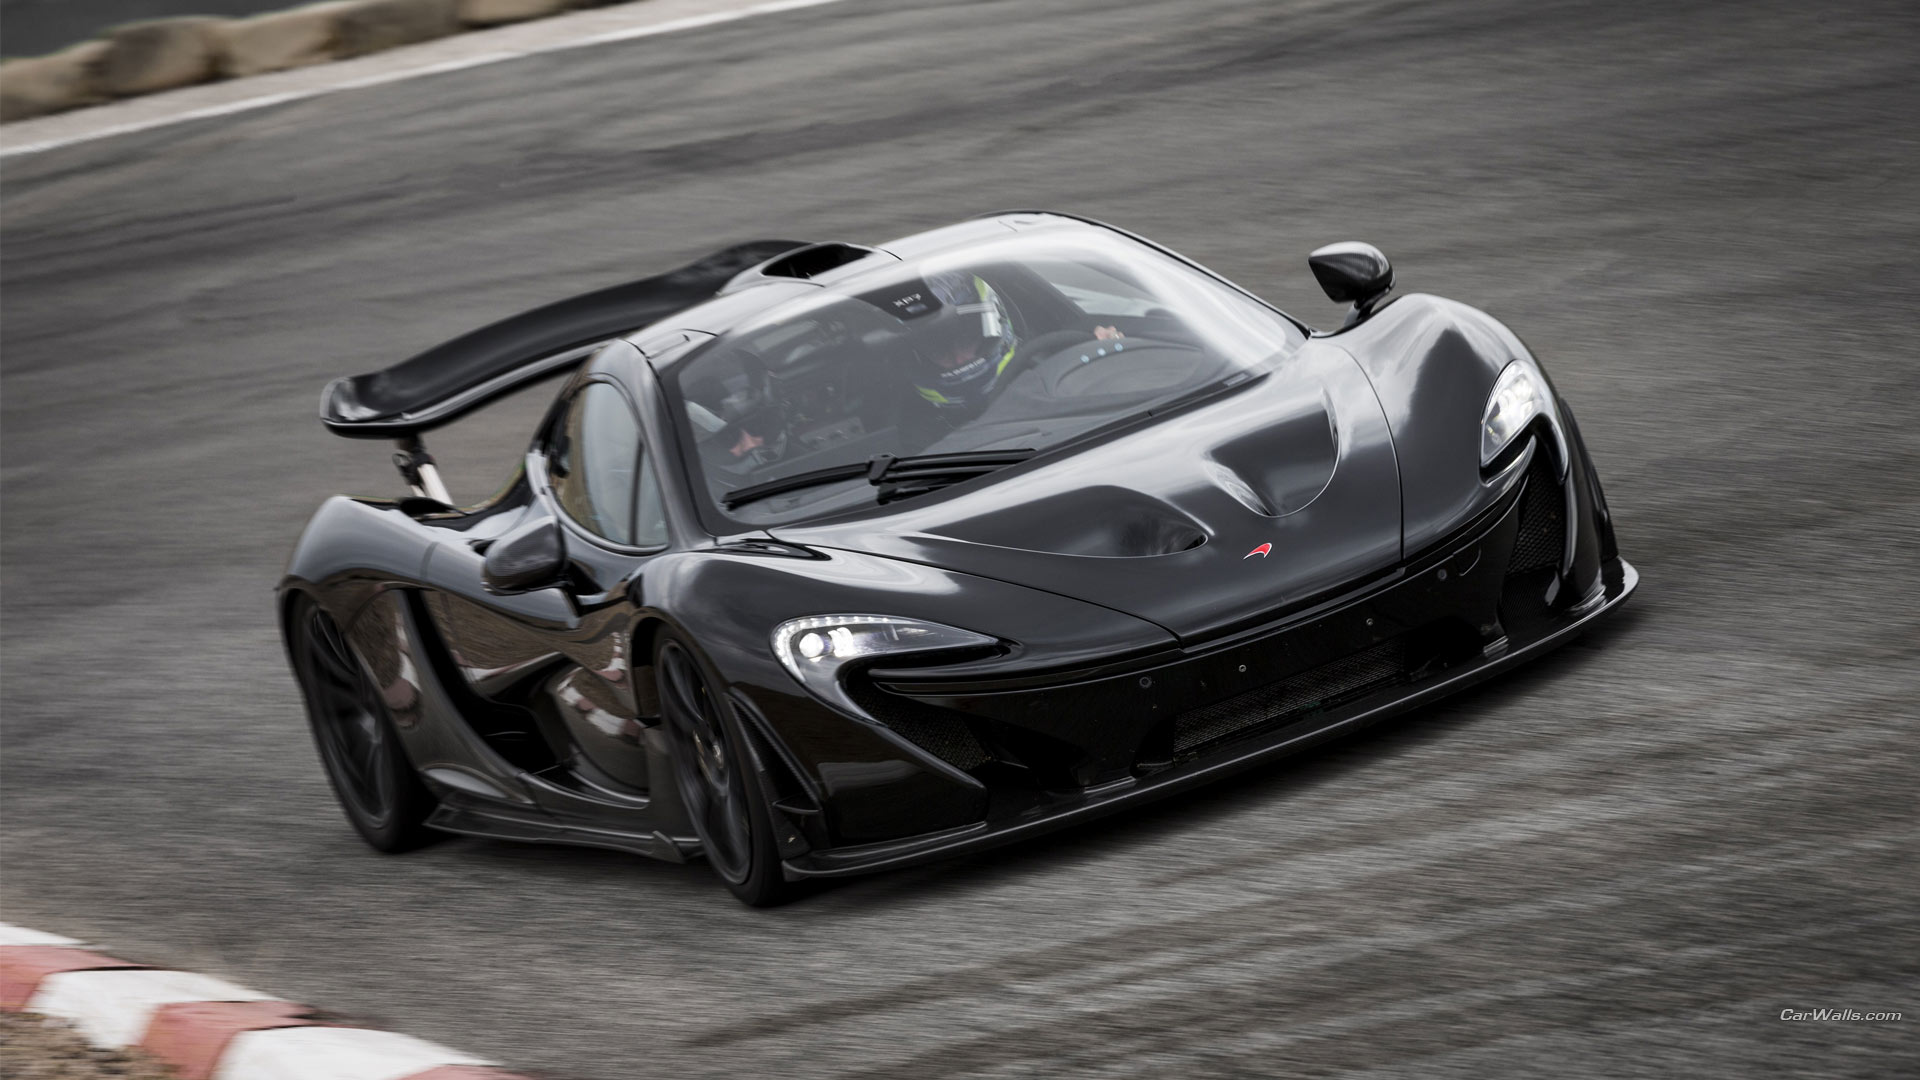 mclaren p1 wallpaper 1920x1080 555. Black Bedroom Furniture Sets. Home Design Ideas